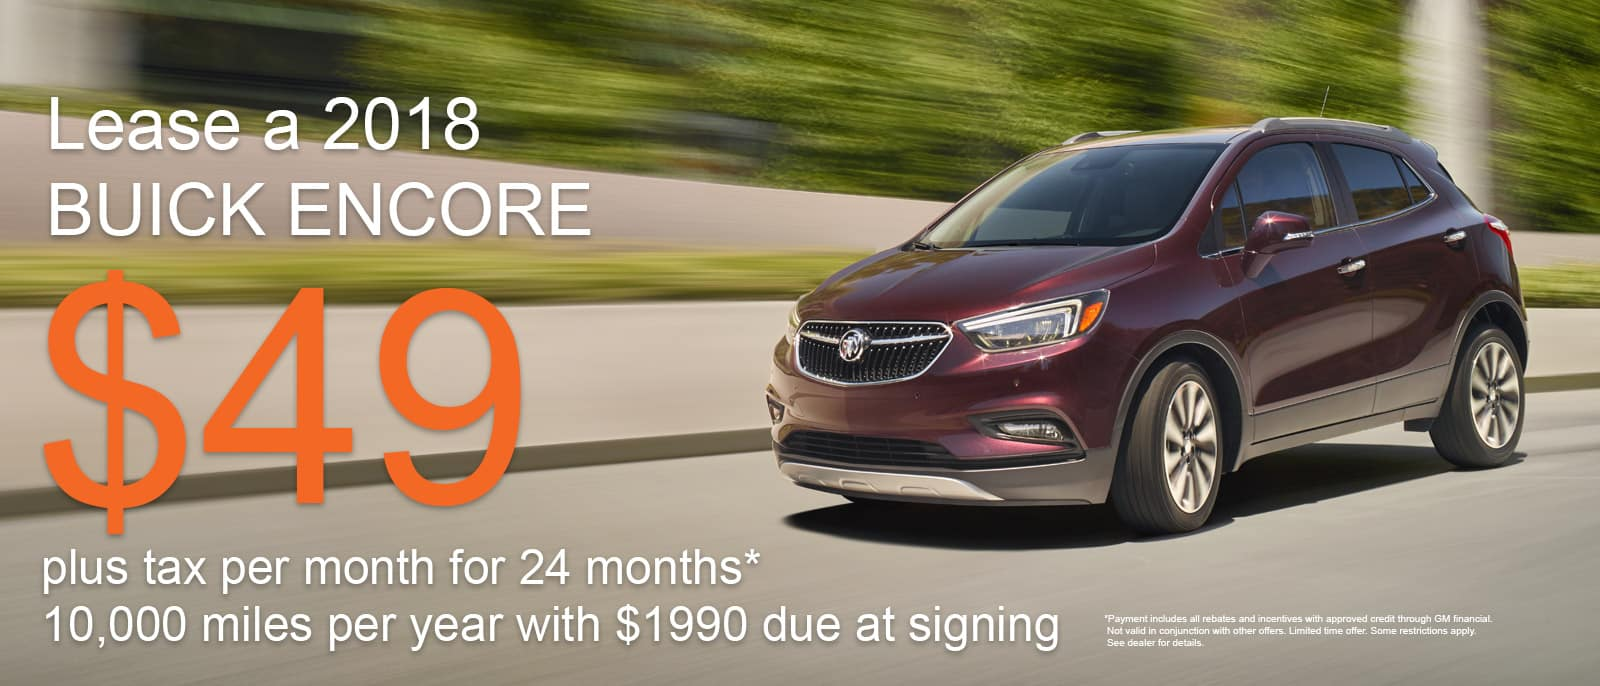 Buick Encore June Special